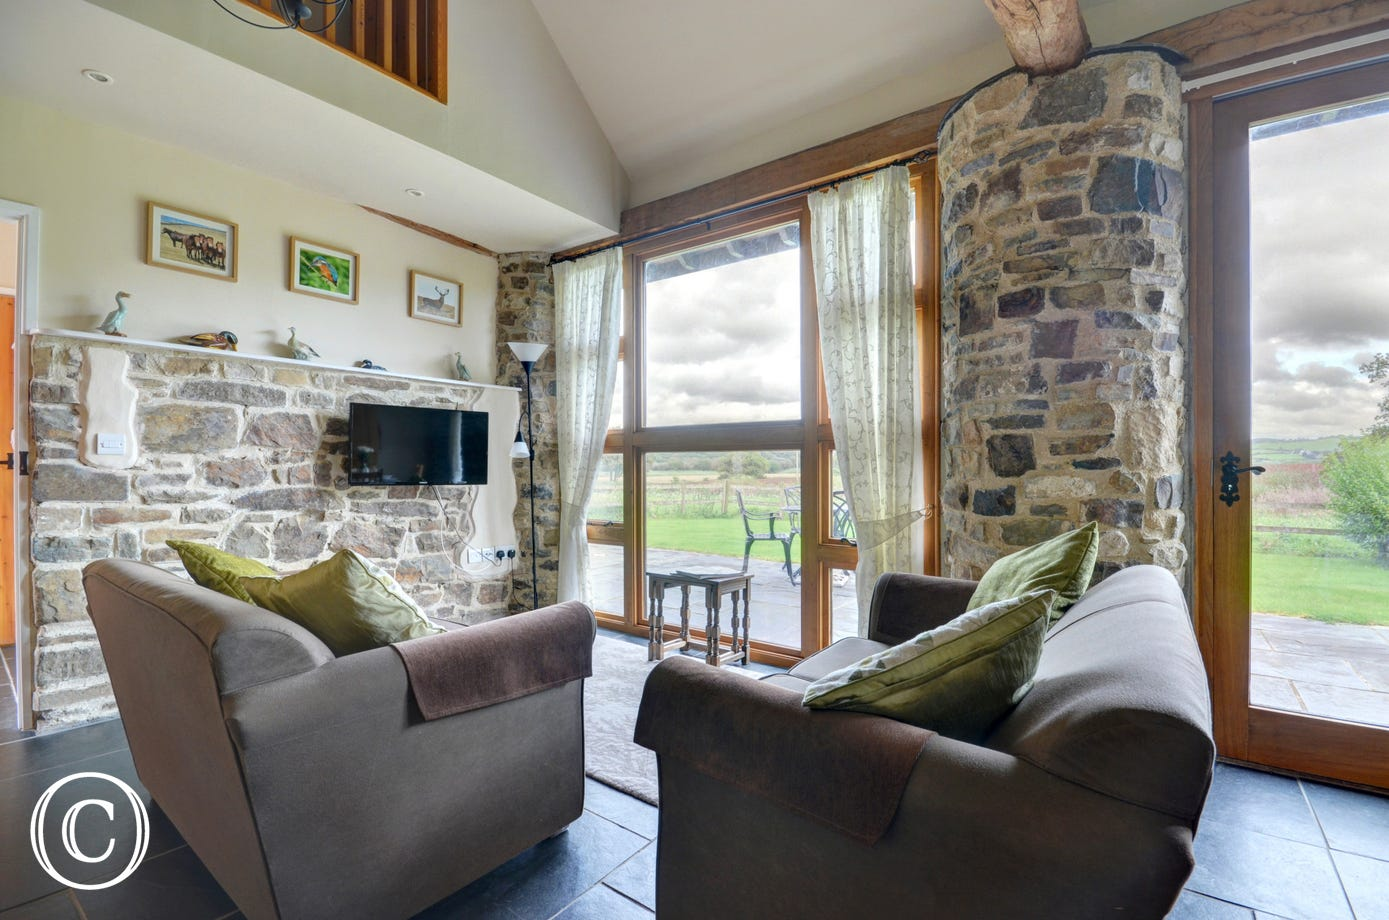 The contemporary furnishings are complemented by slate flooring and a cosy corner with comfy sofas has far reaching views